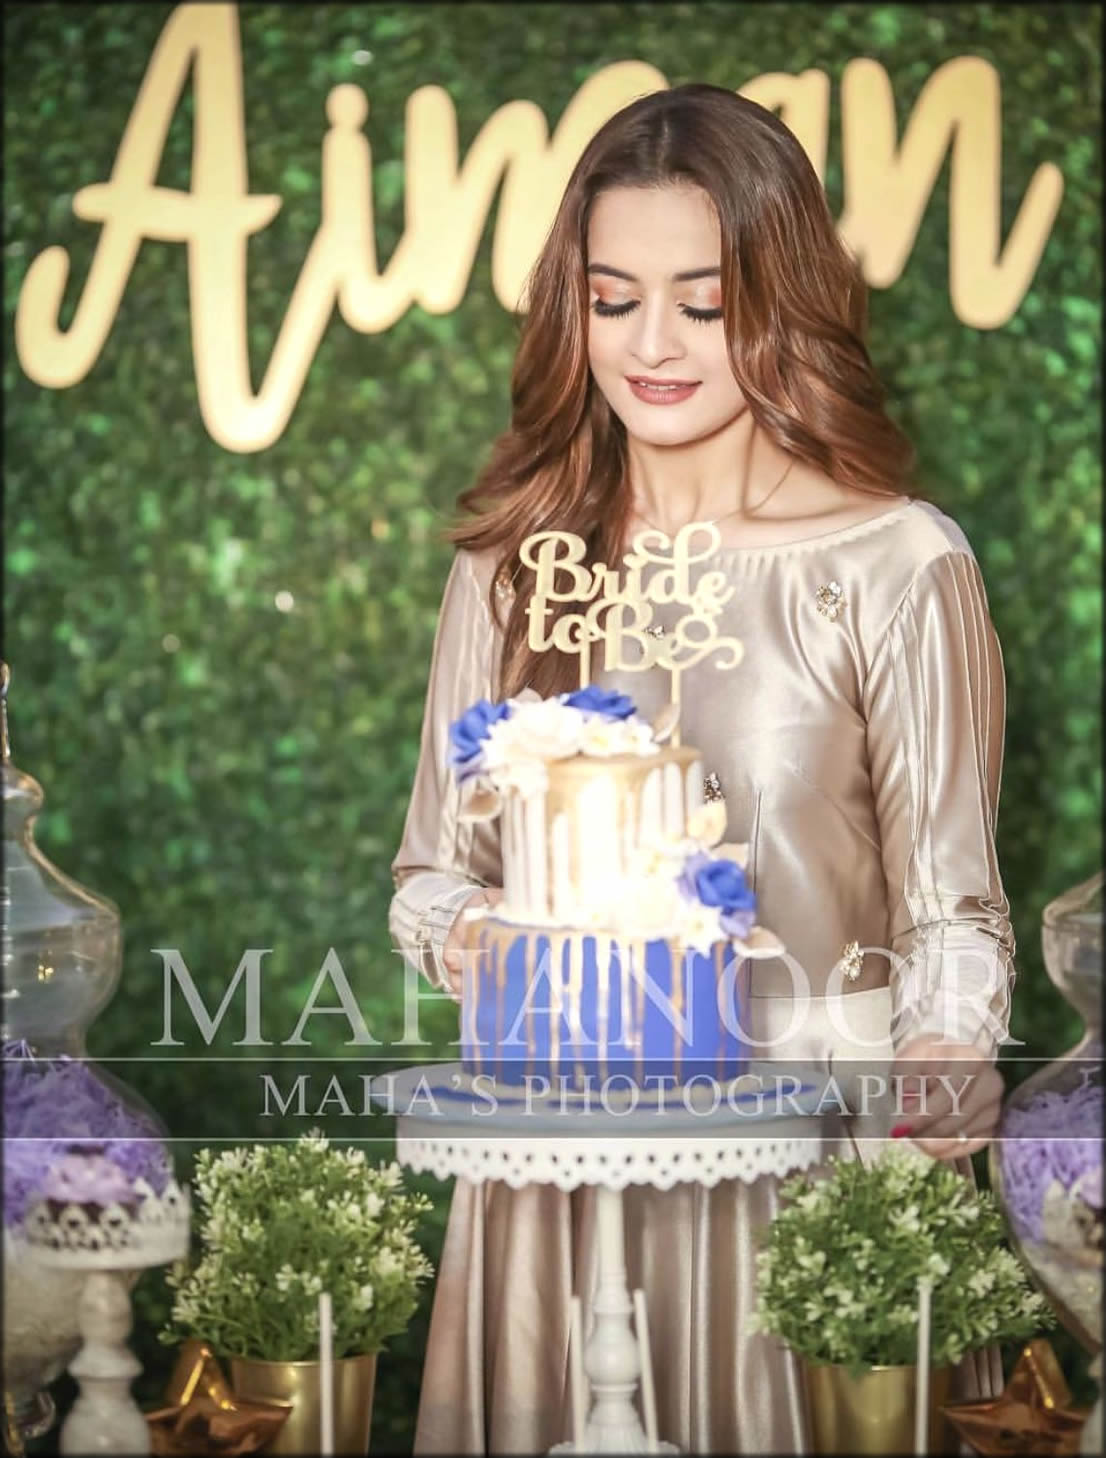 Bride to be With Cake